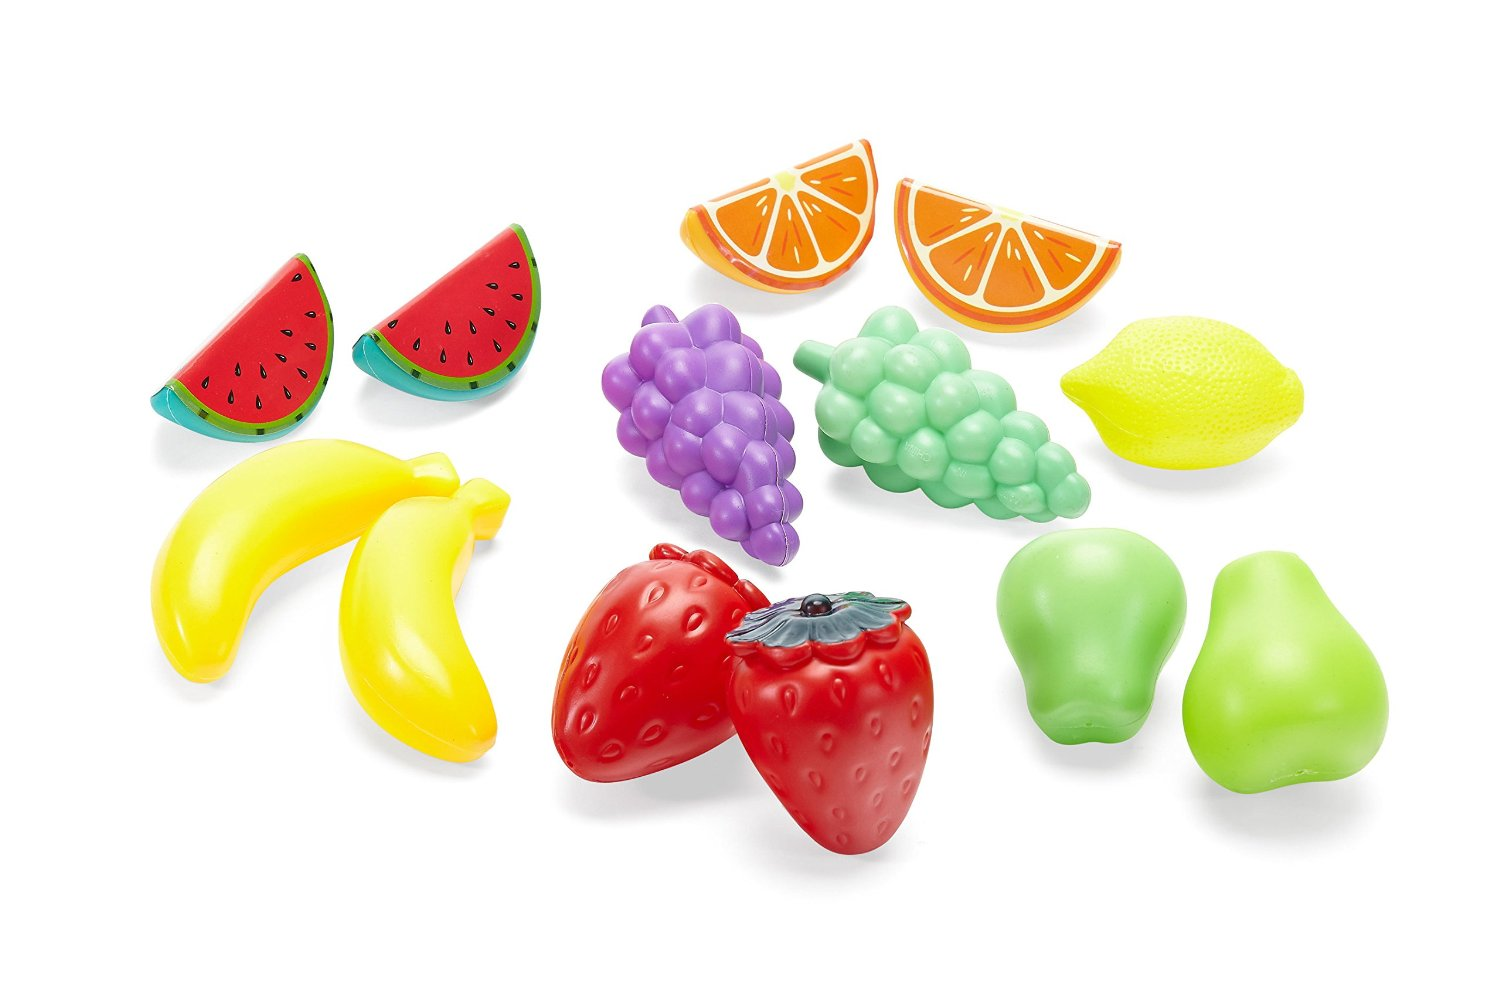 Plastic Toy Food : Organic play food set discount announced by her pow